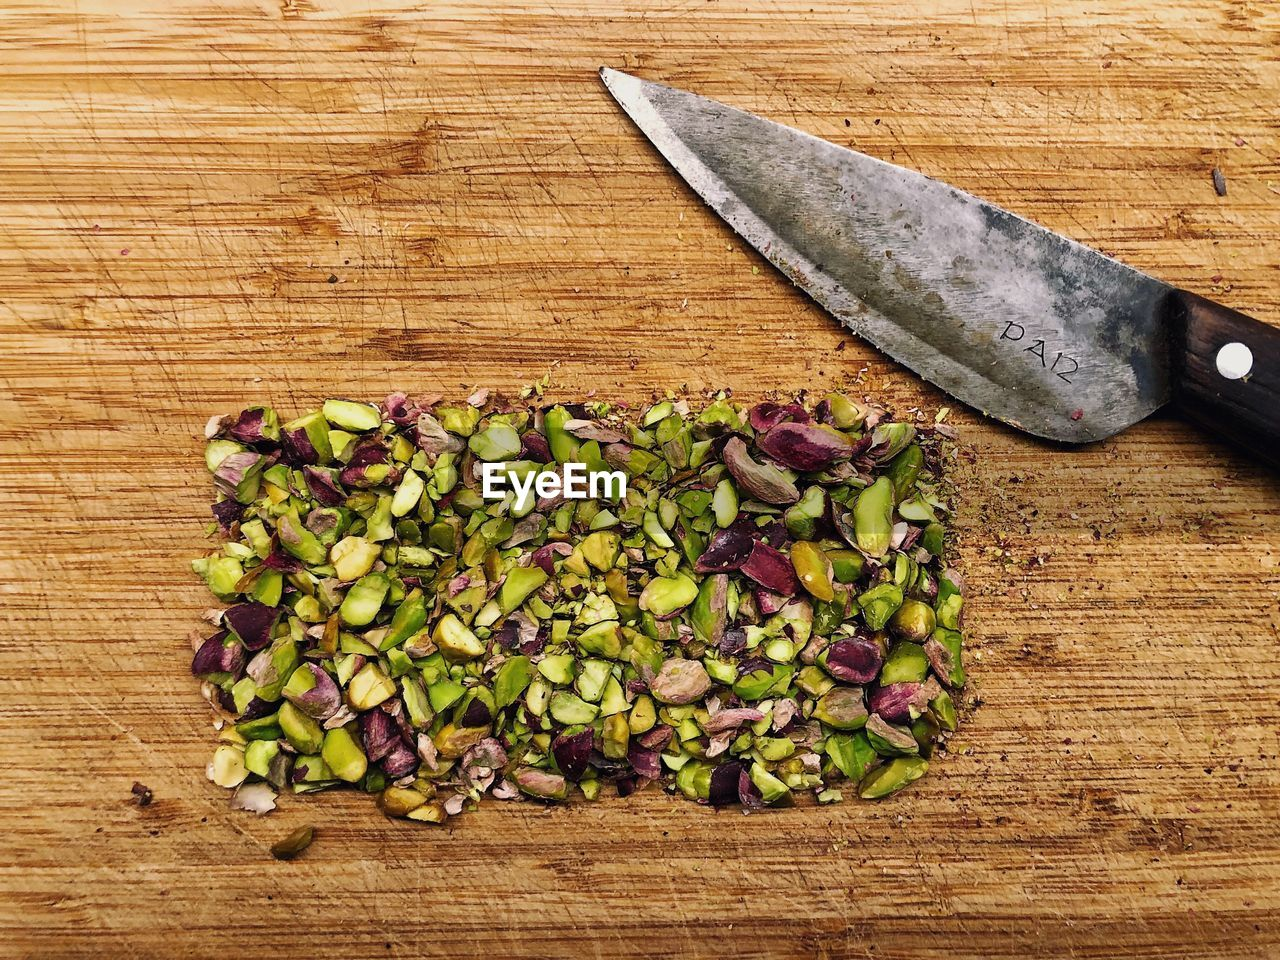 Directly above shot of chopped pistachios by knife on cutting board